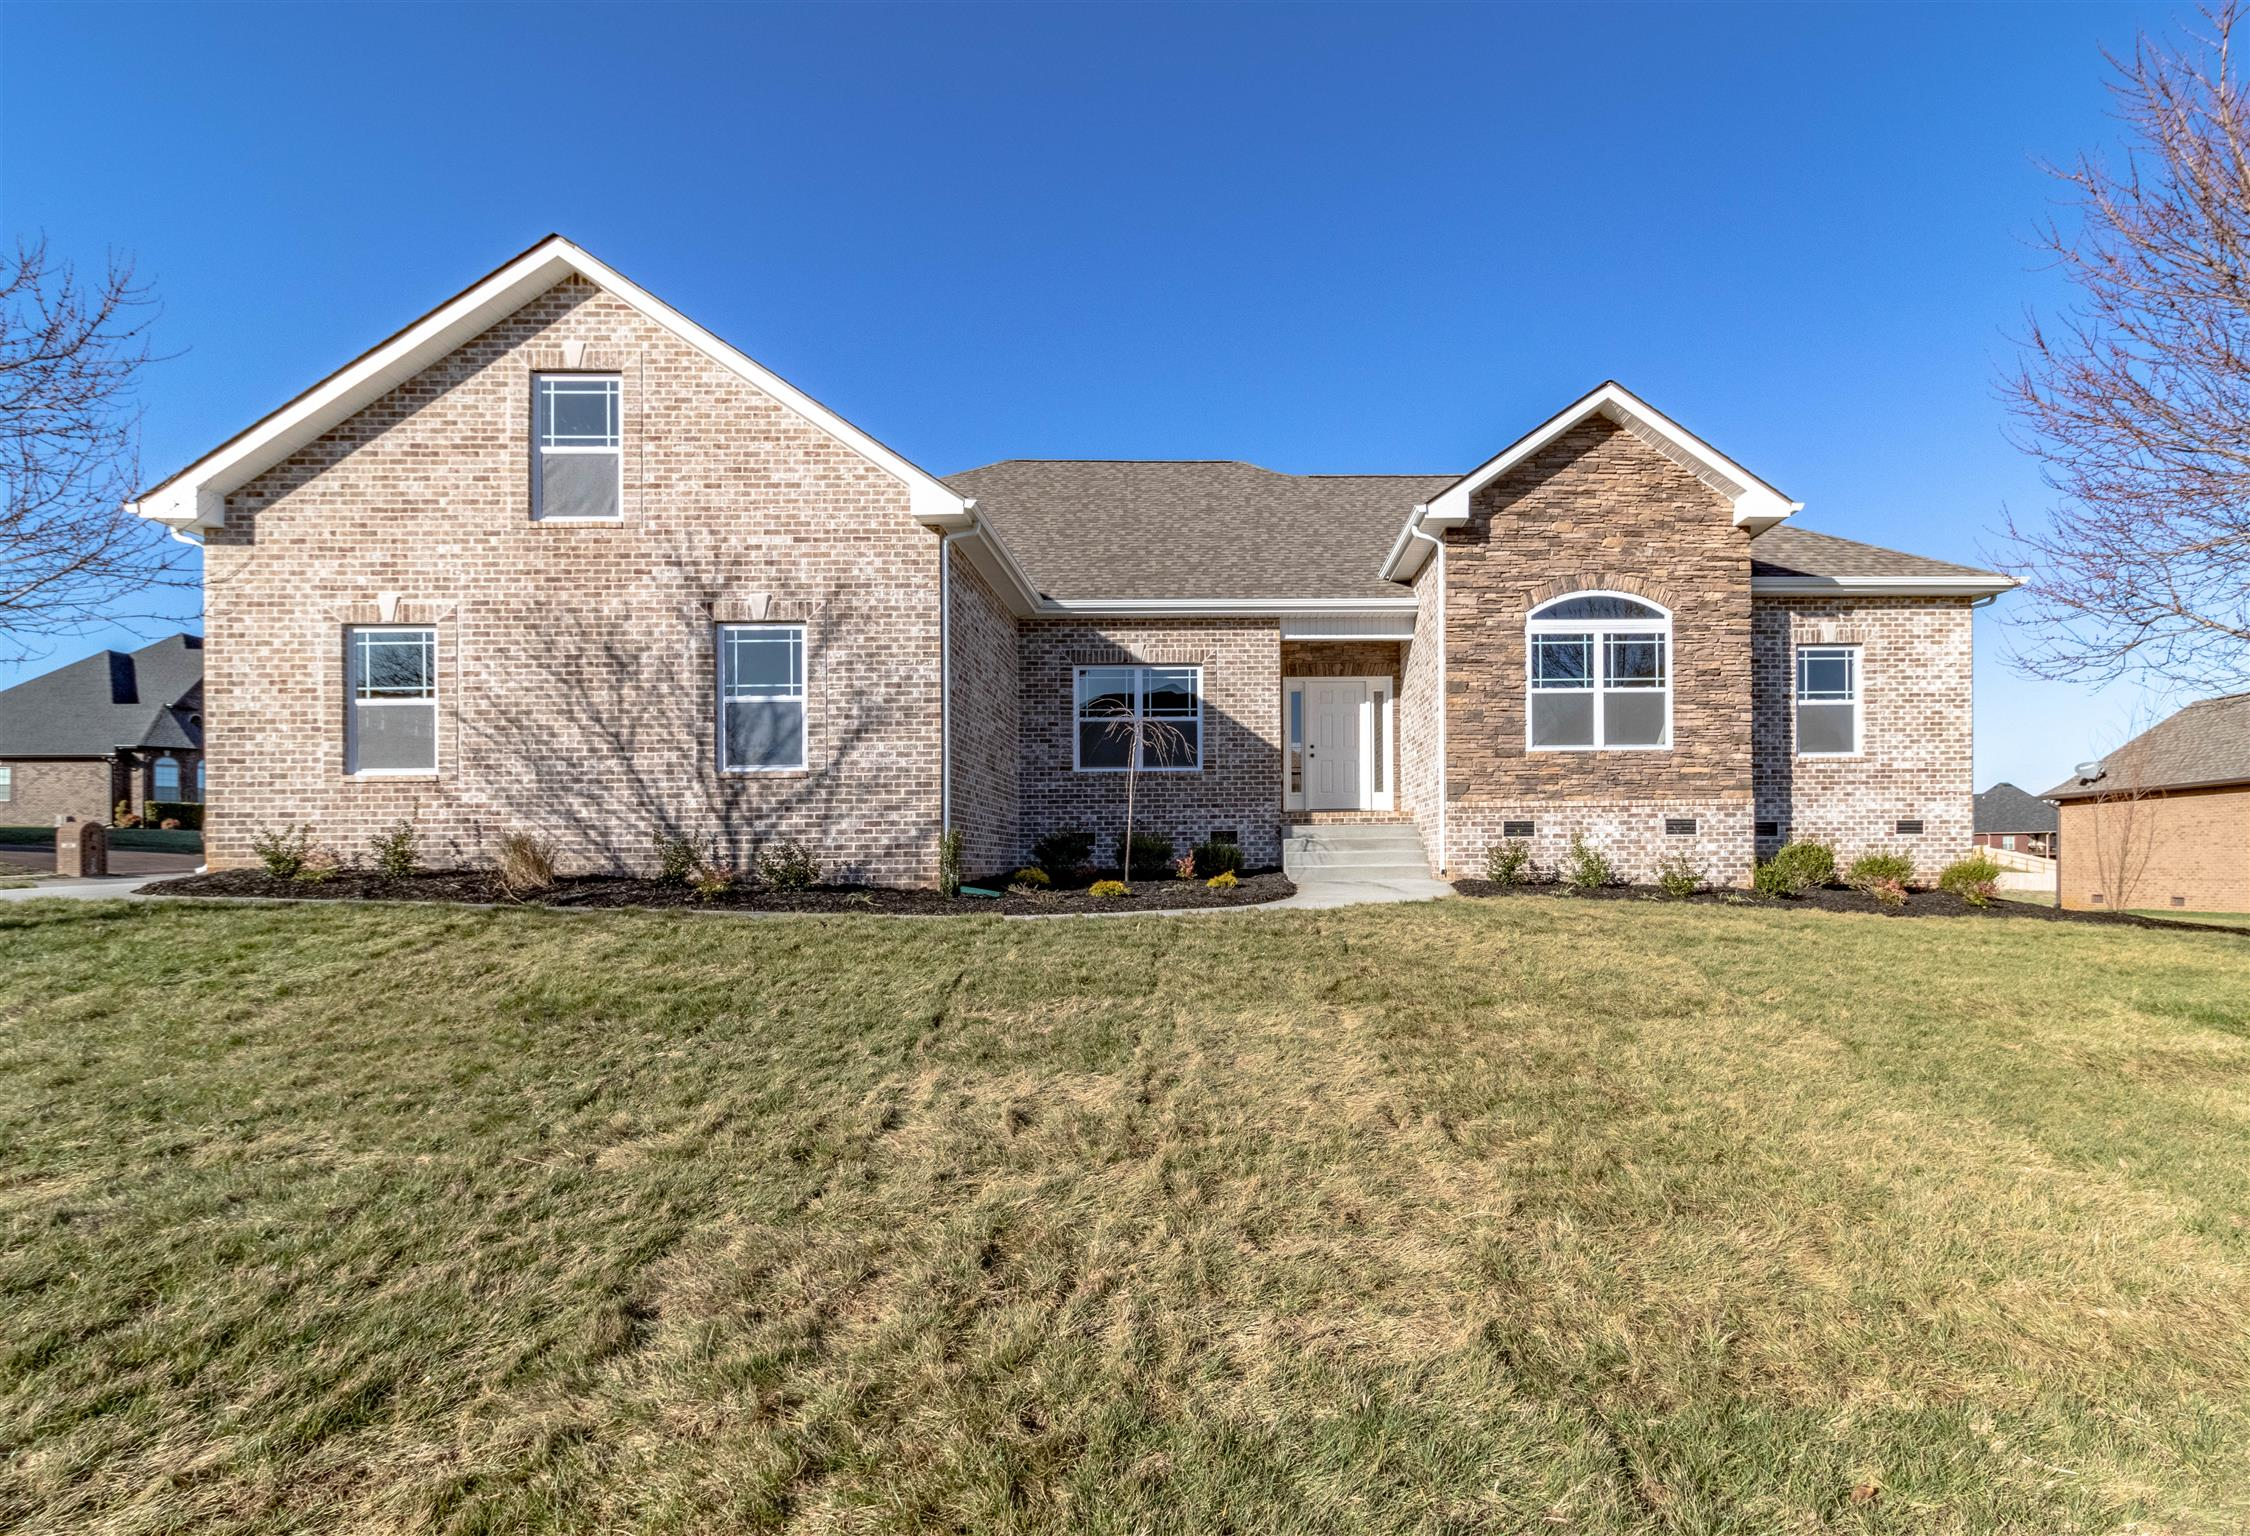 141 Covey Rise Cir, Clarksville, Tennessee